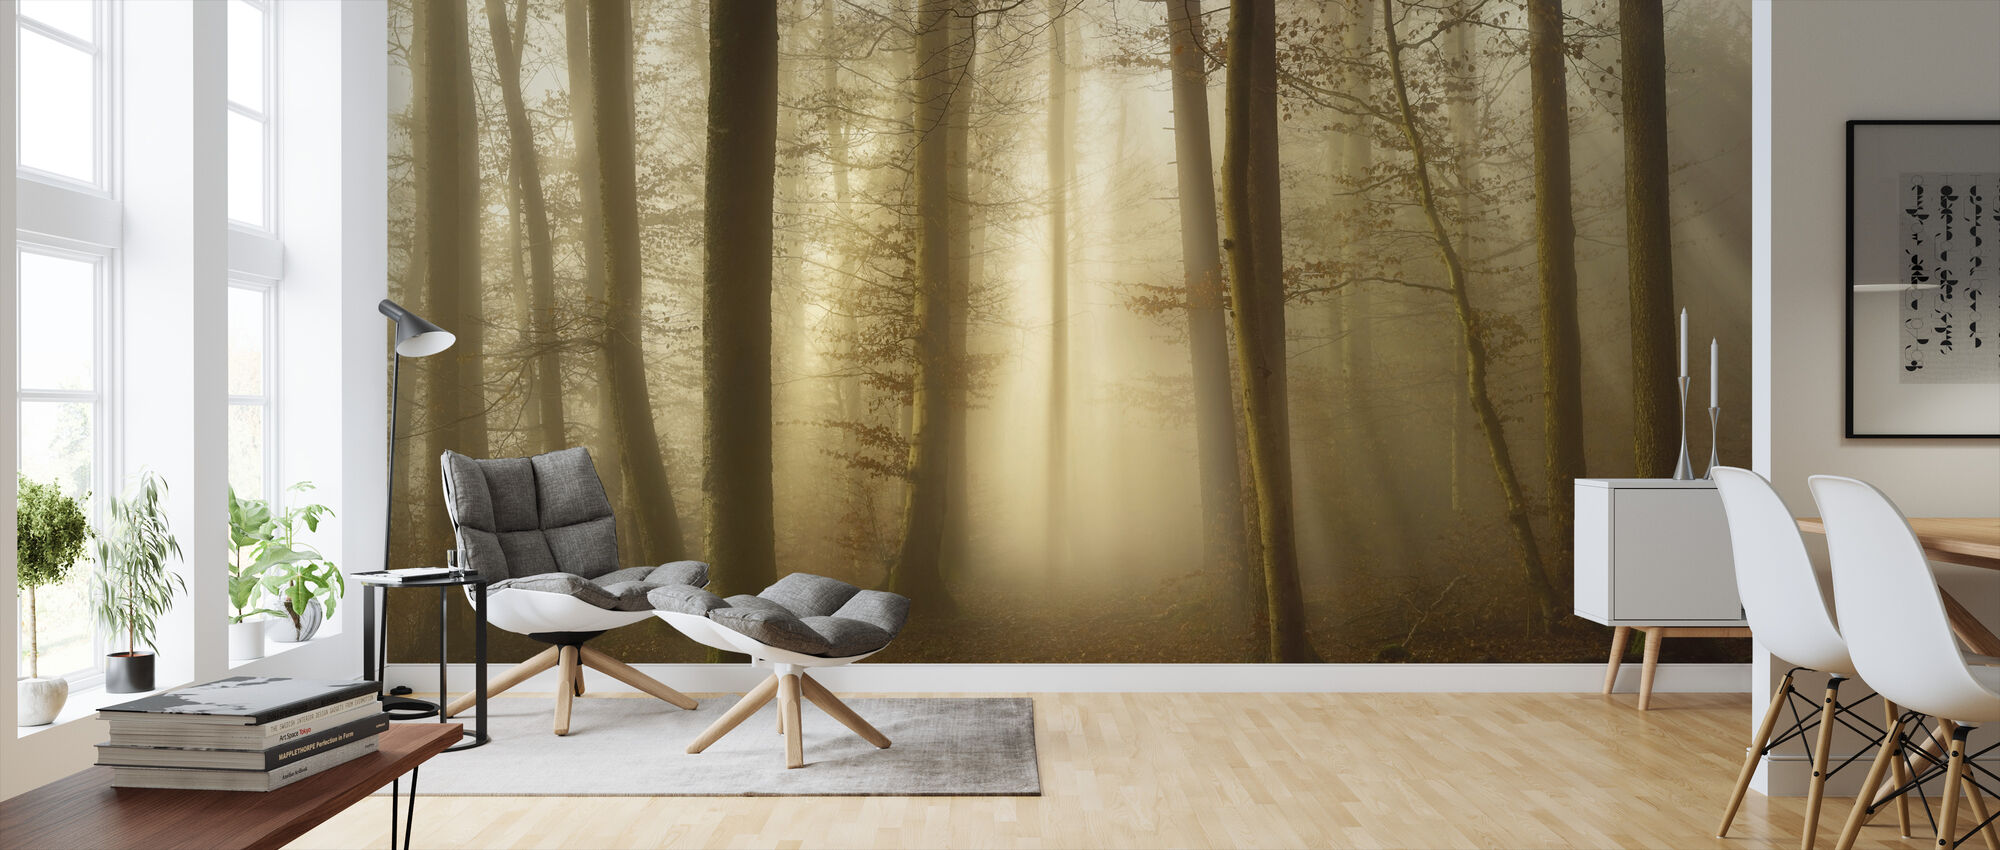 Into the Trees - Wallpaper - Living Room